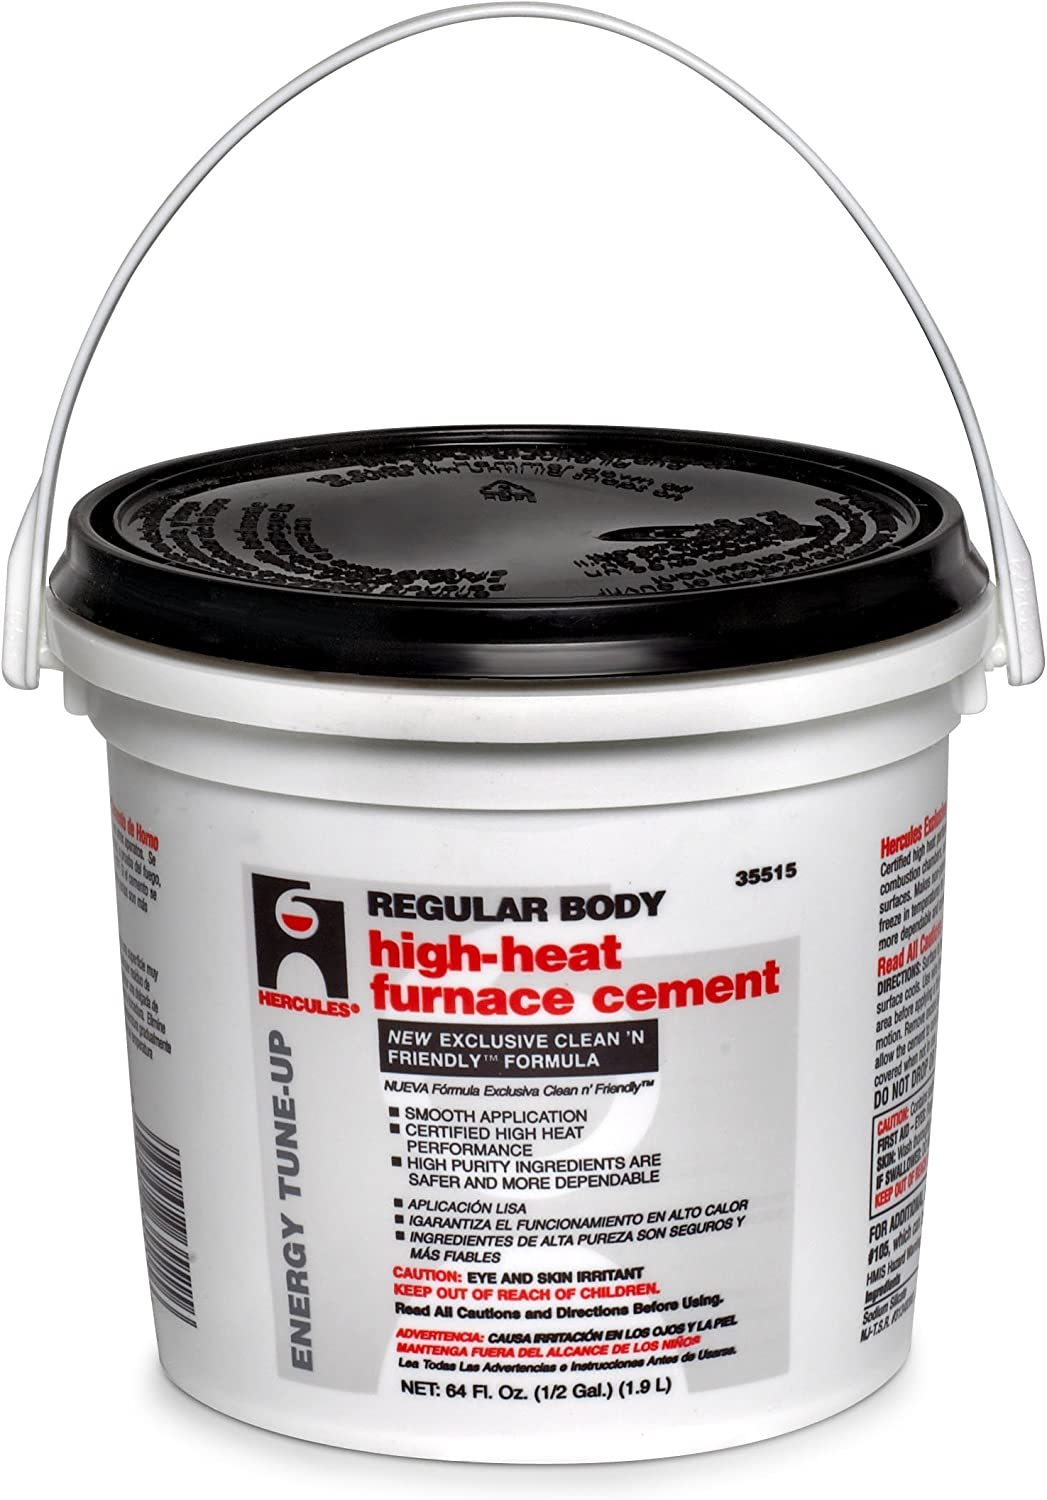 1//2 Gallon Furnace Cement For Fireplaces